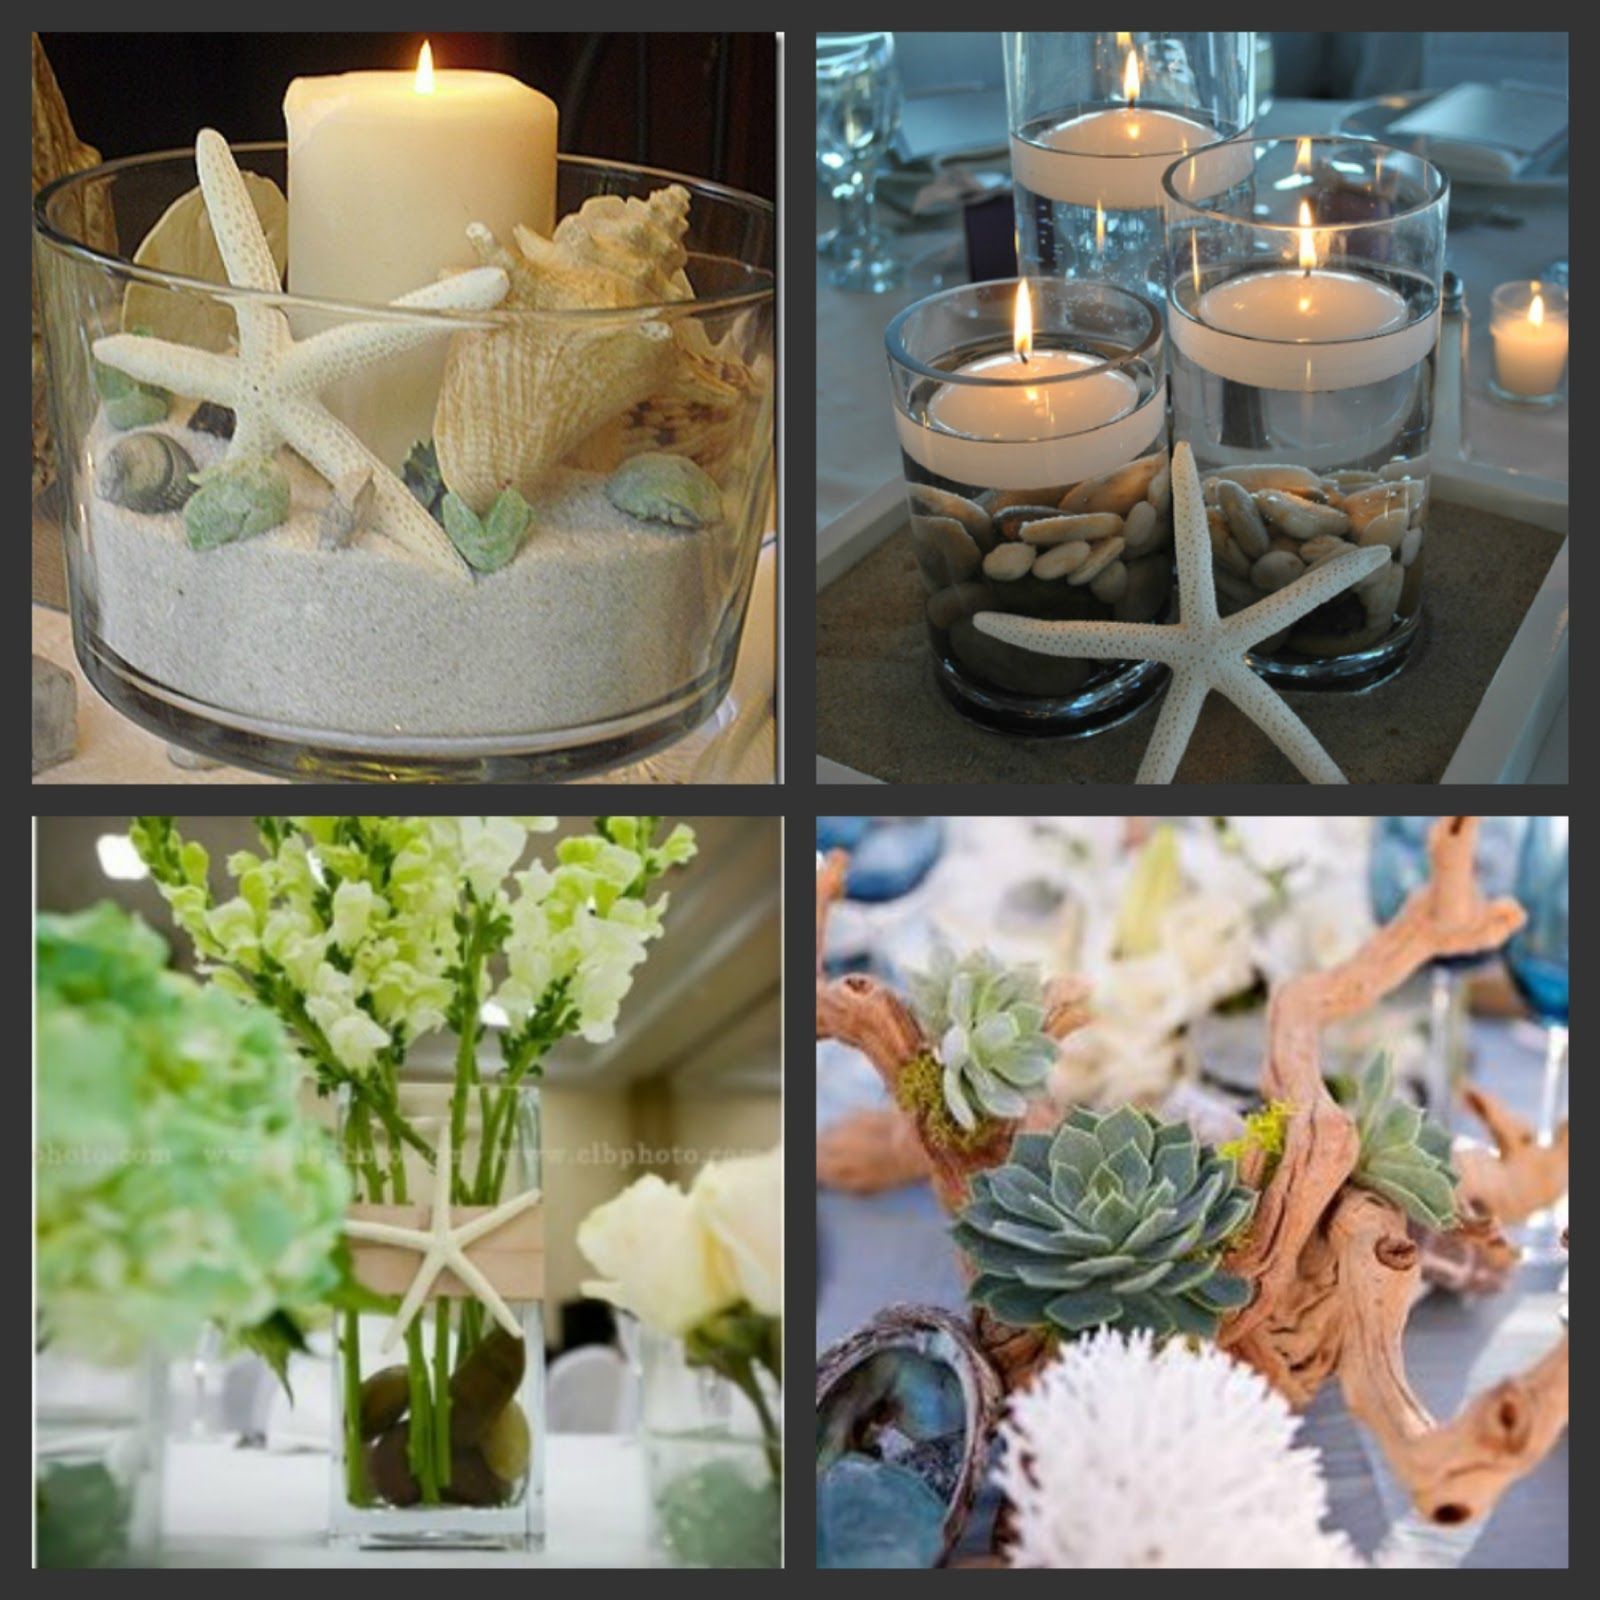 Beach Wedding Decorations Ideas: Beach Theme Bridal Shower Centerpiece Ideas